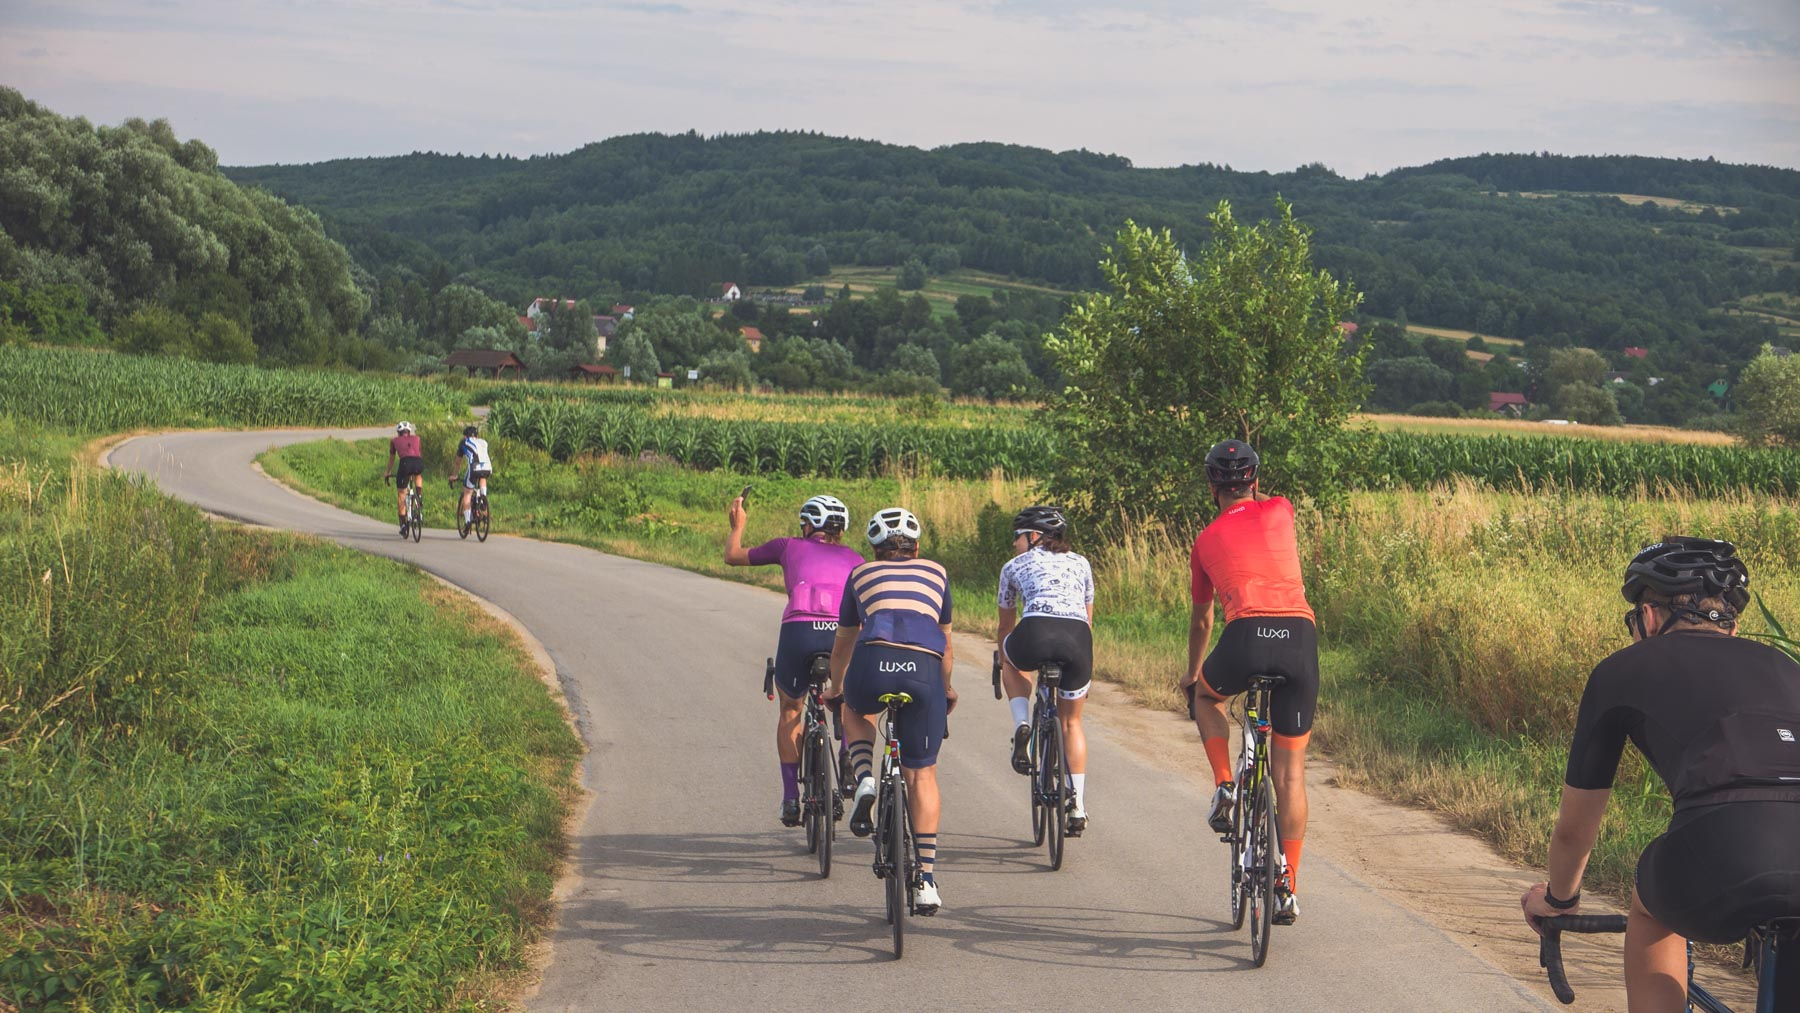 cycling in the Carpathian region